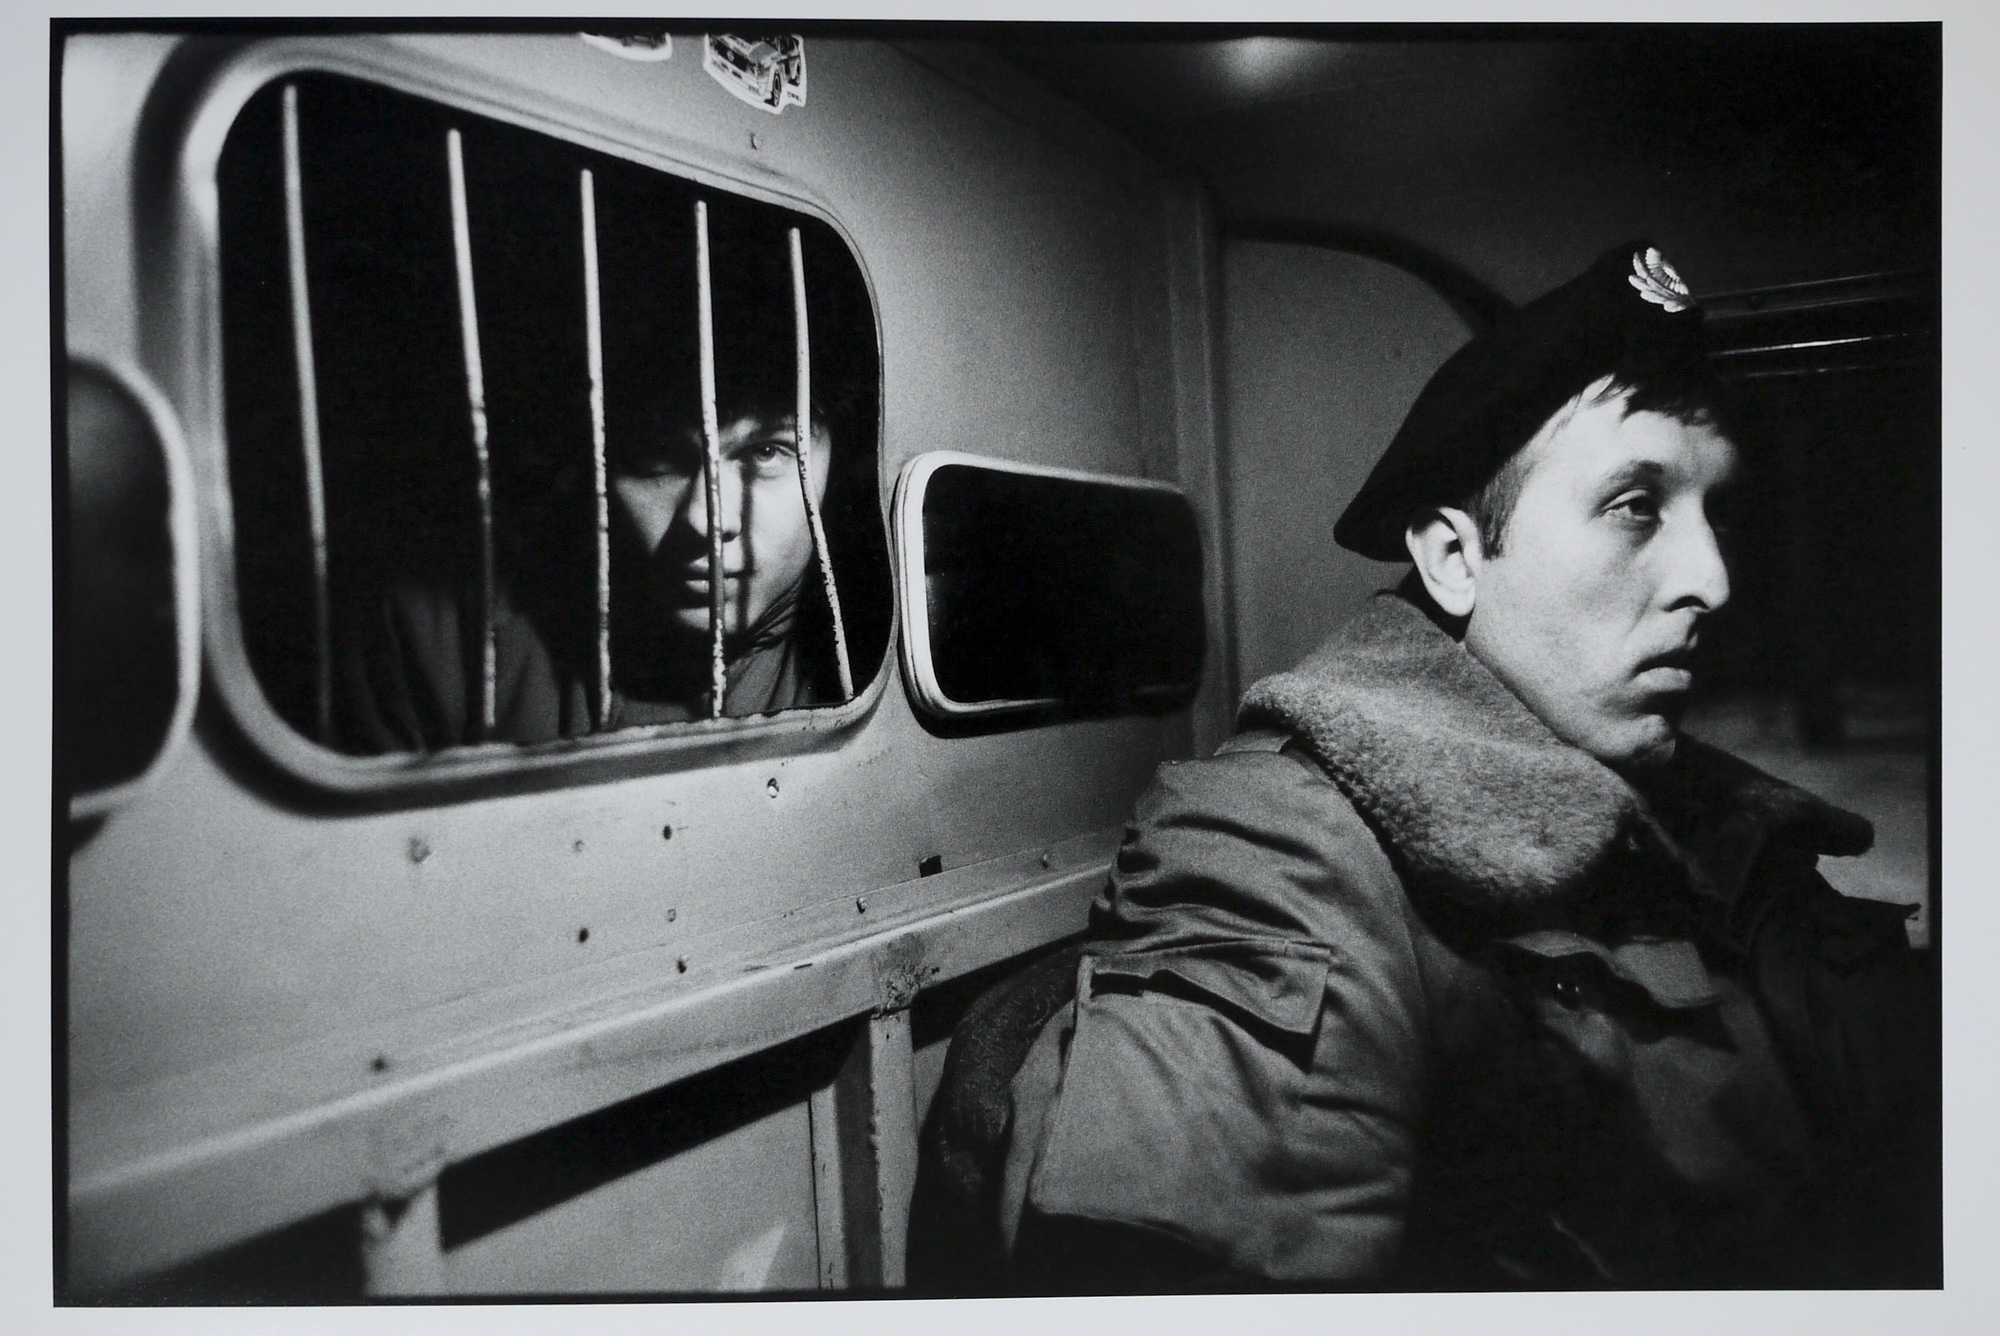 A drunk in the back of a police van, December 1992.